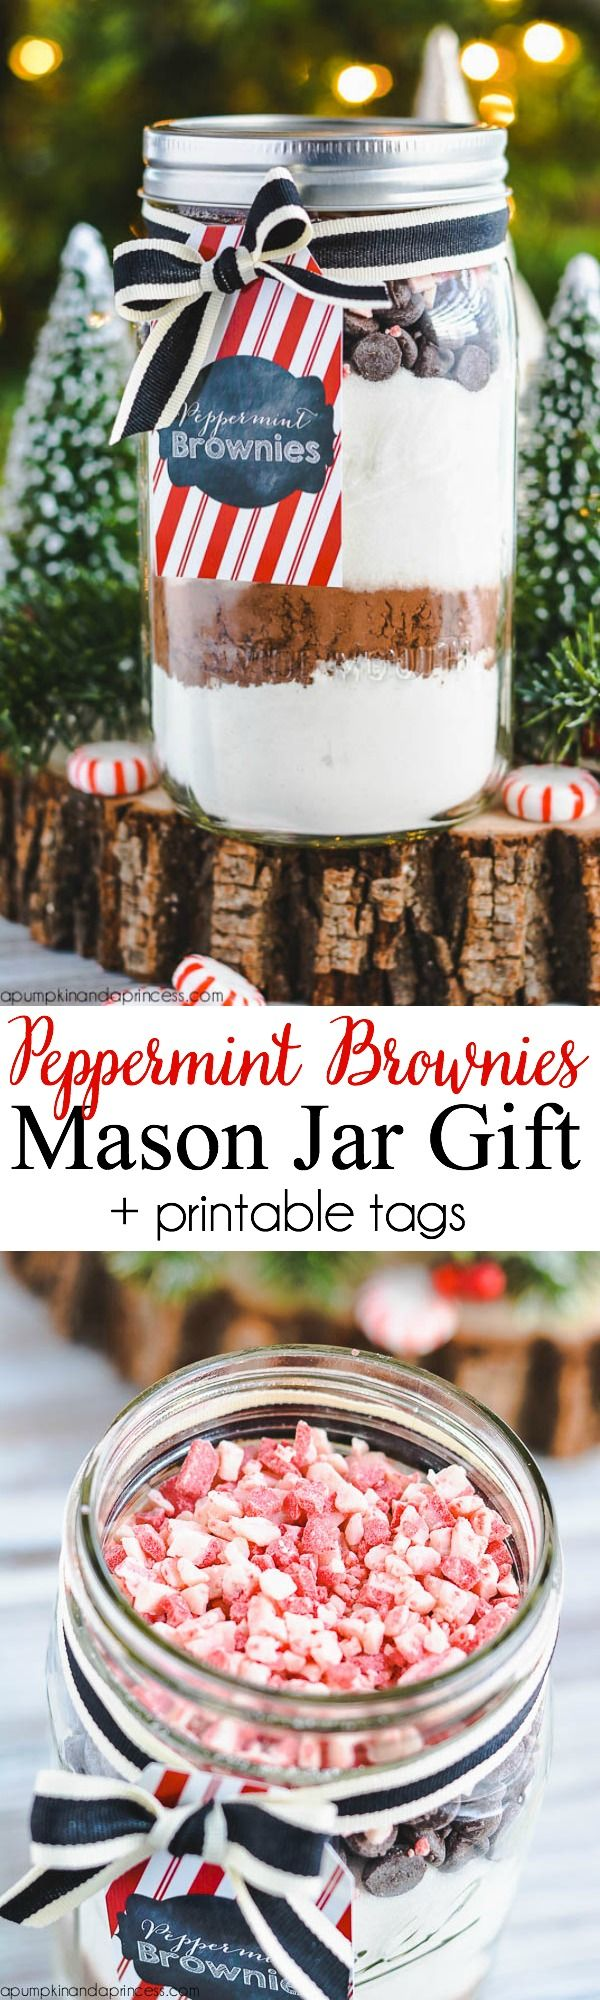 Peppermint Brownie Mix - Mason Jar Gift by MichaelsMakers A Pumpkin And A Princess